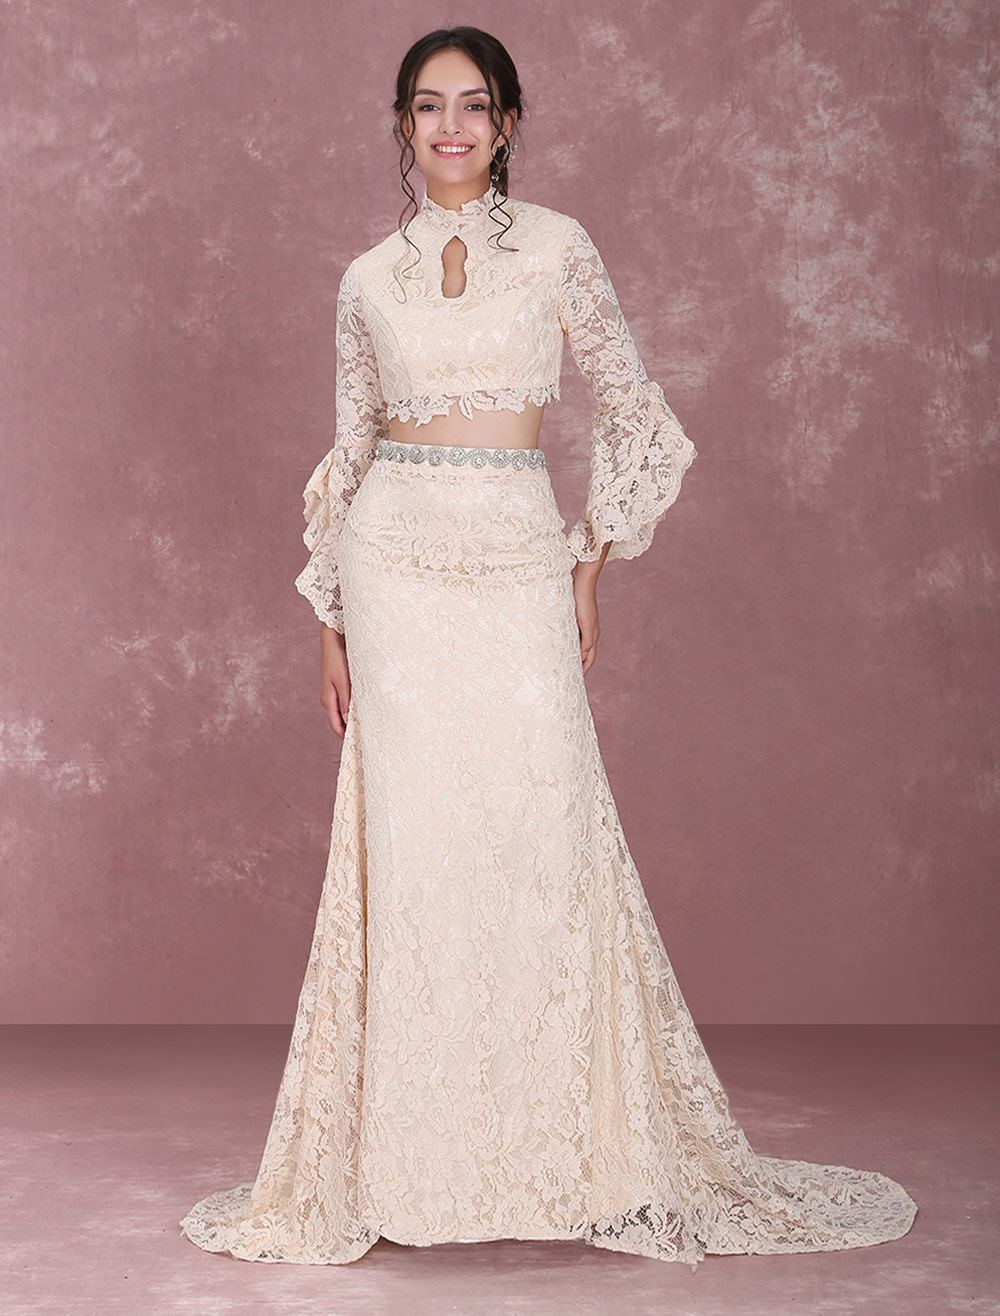 3dc6a4c8ae25 ... Champagne Wedding Dresses Lace Two Piece Long Sleeve High Collar Cutoff  Mermaid Bridal Gown With Train ...